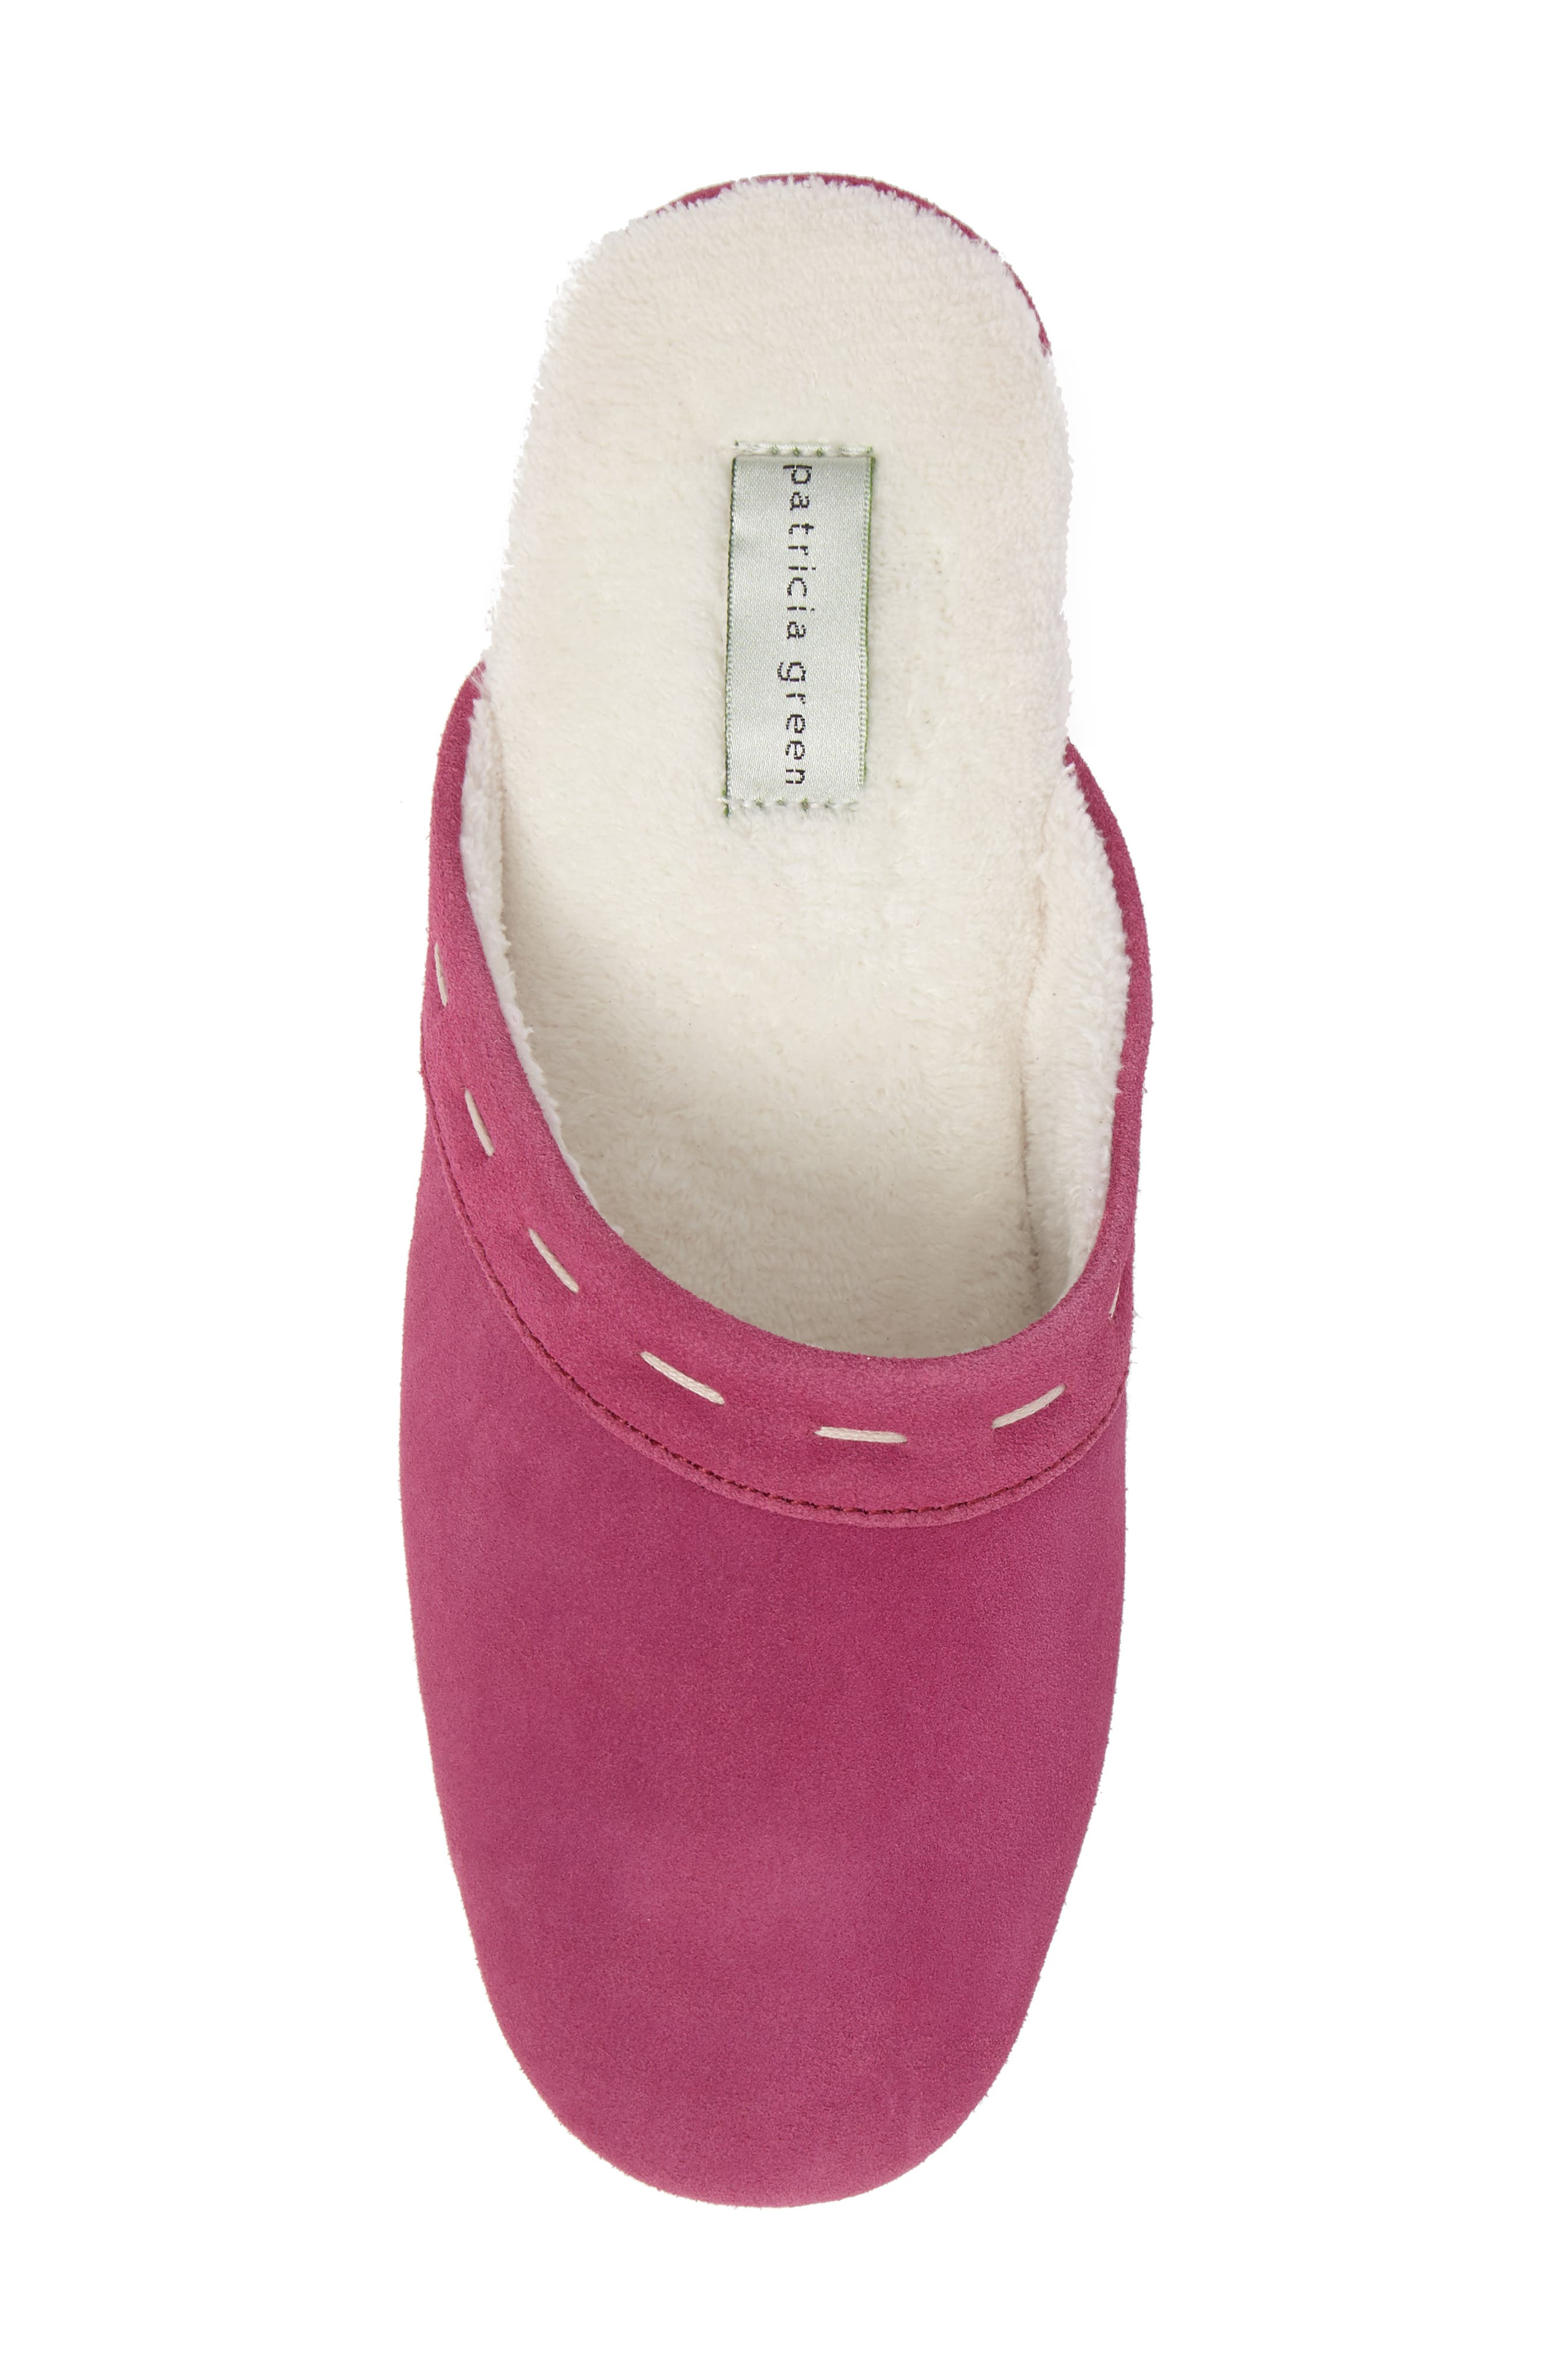 Mayfair Wedge Slipper,                             Alternate thumbnail 5, color,                             Hot Pink Suede